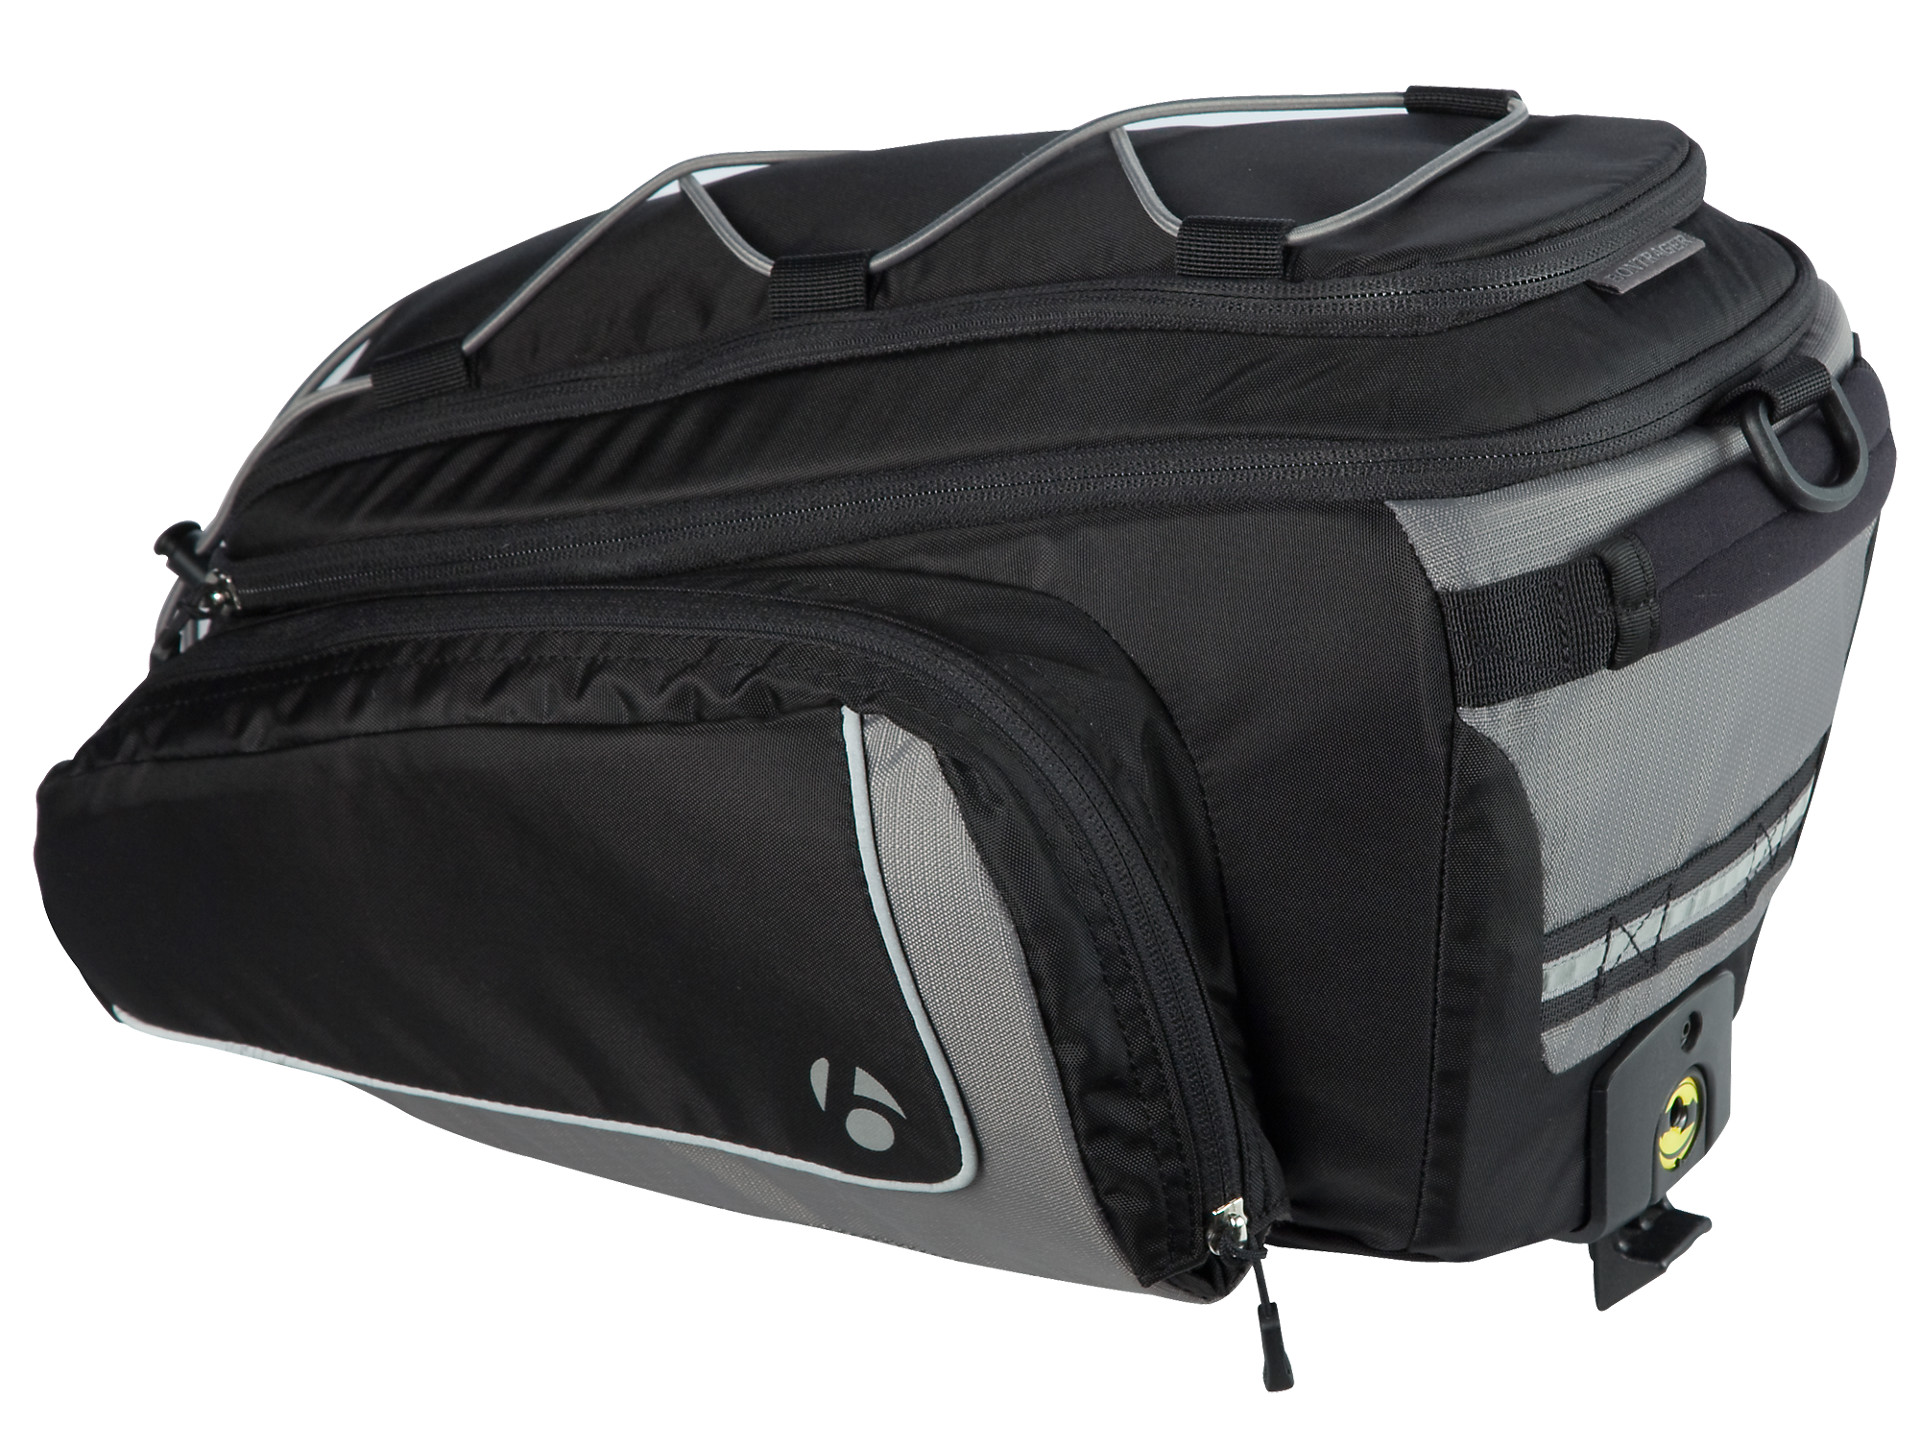 Bontrager Interchange Deluxe Plus Rear Trunk Bag 24280cc645